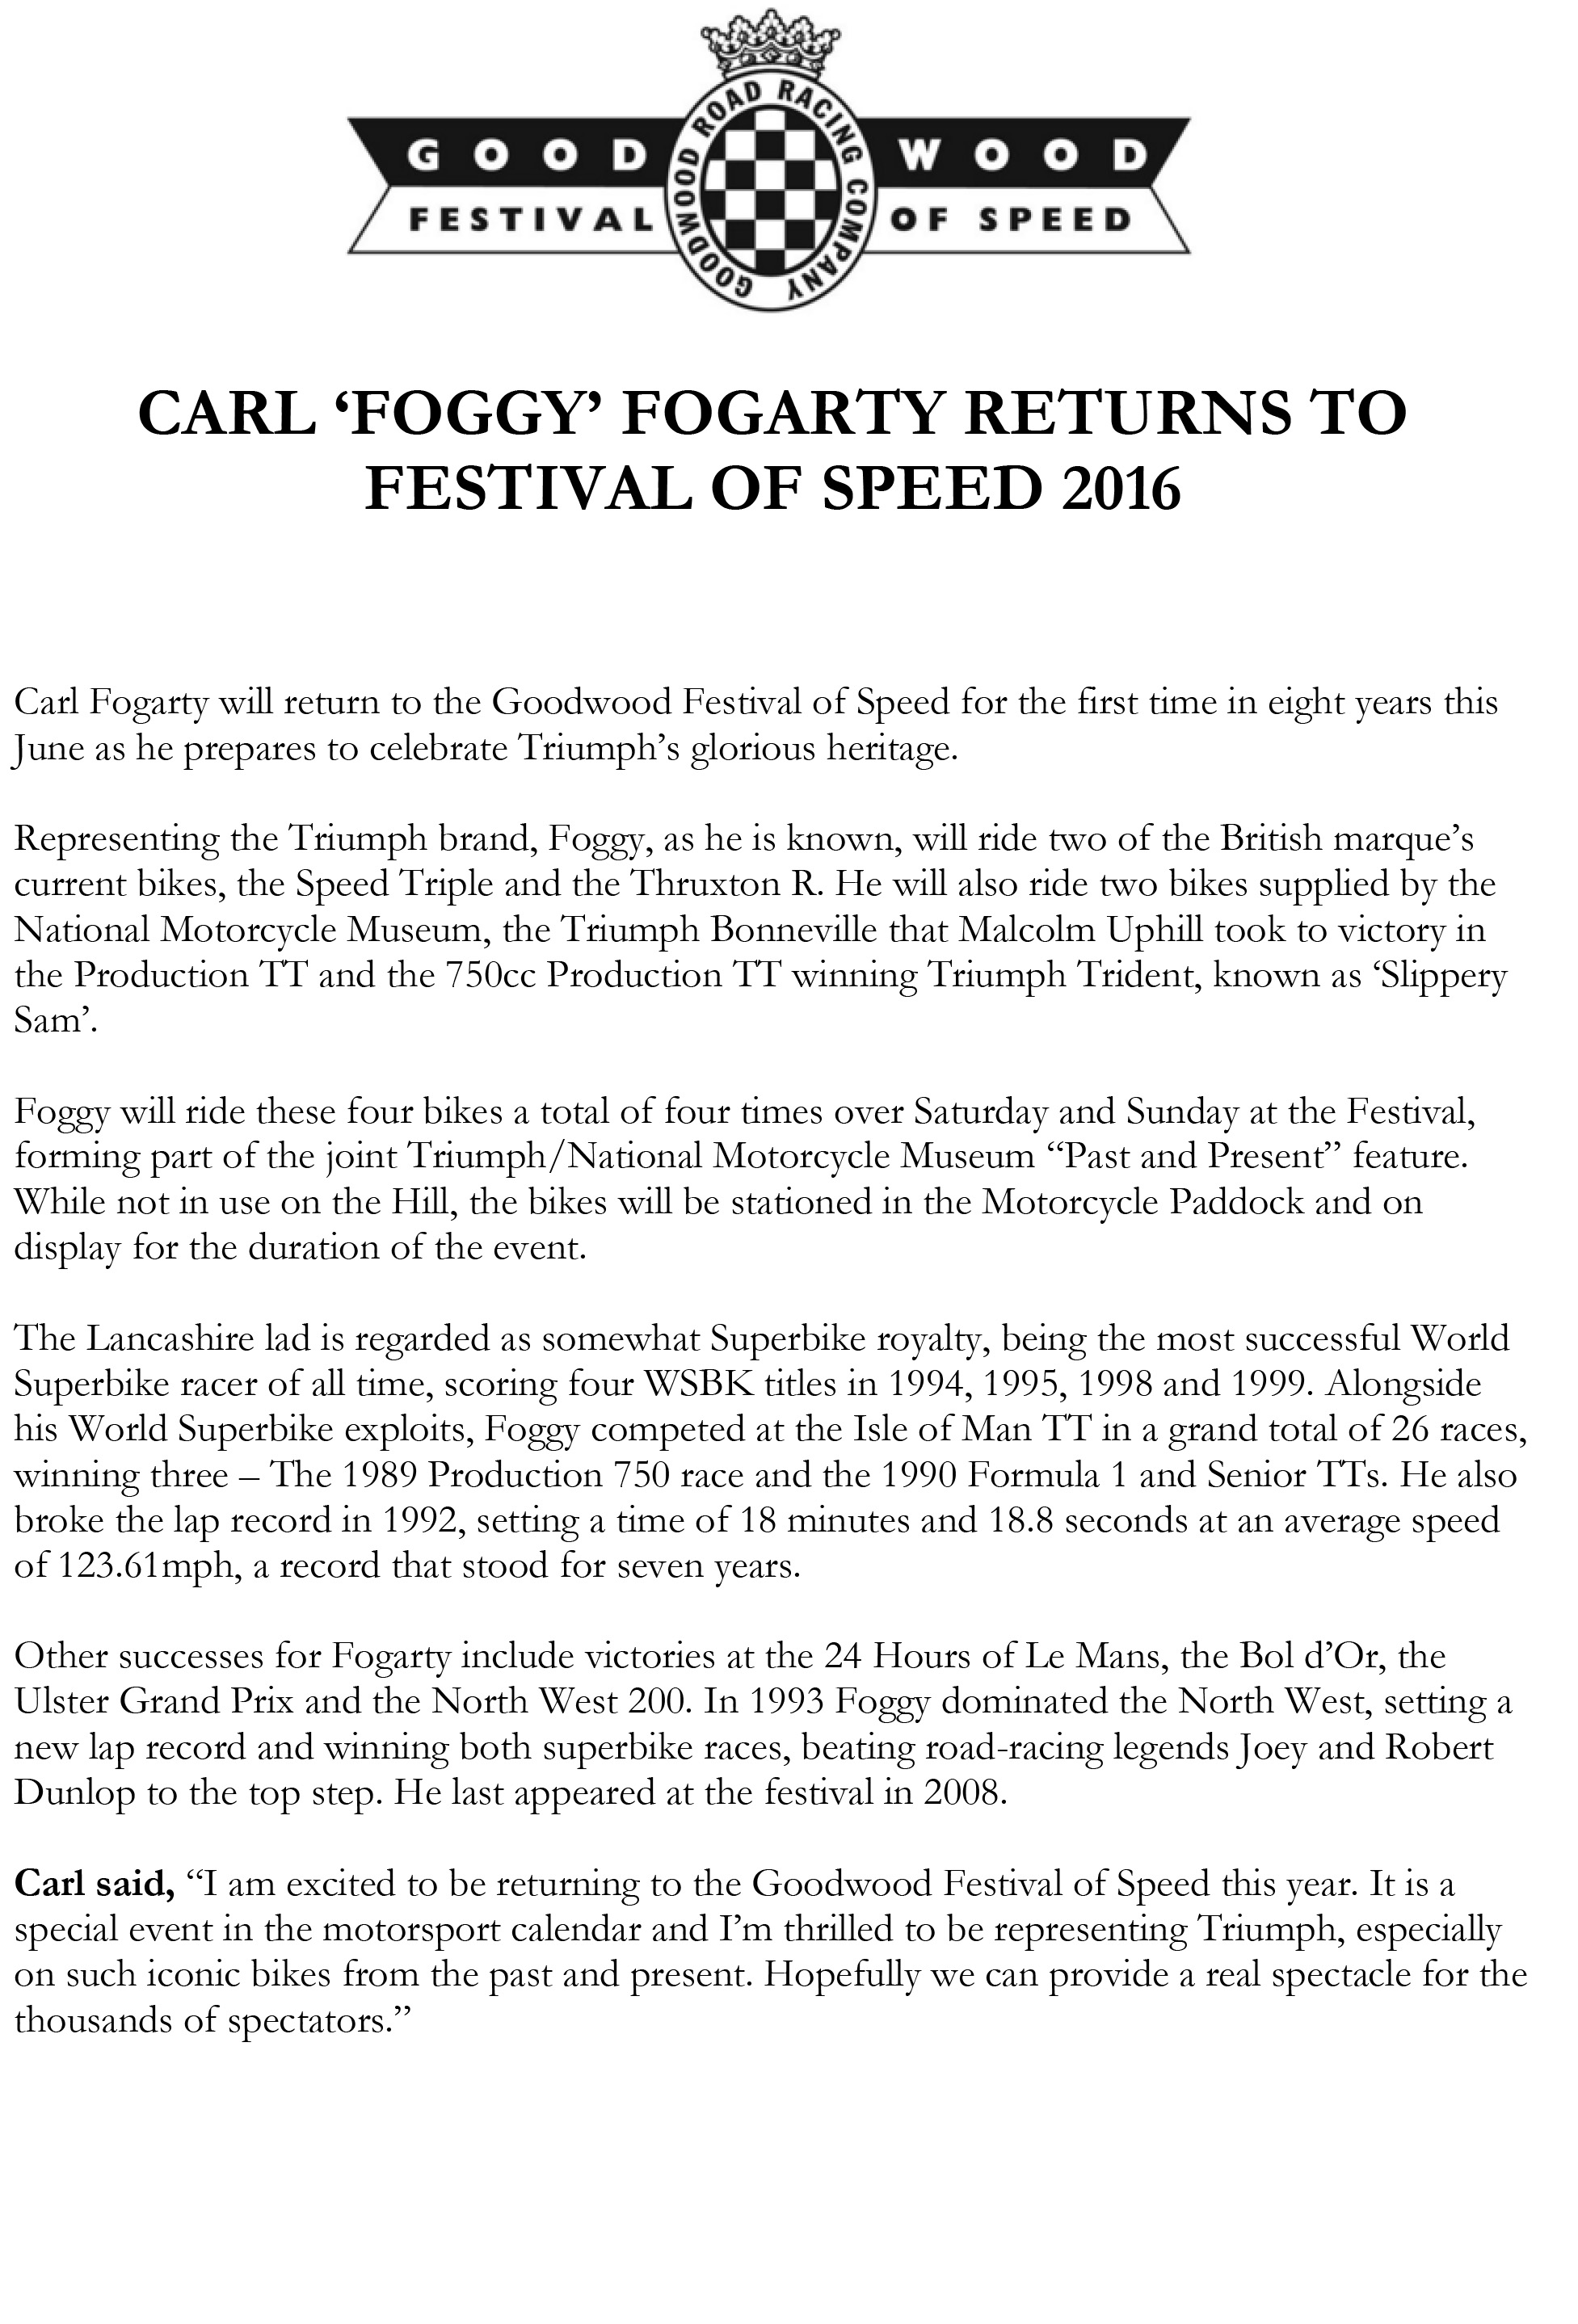 Carl 'Foggy' Fogarty Returns to Festival of Speed 2016_1